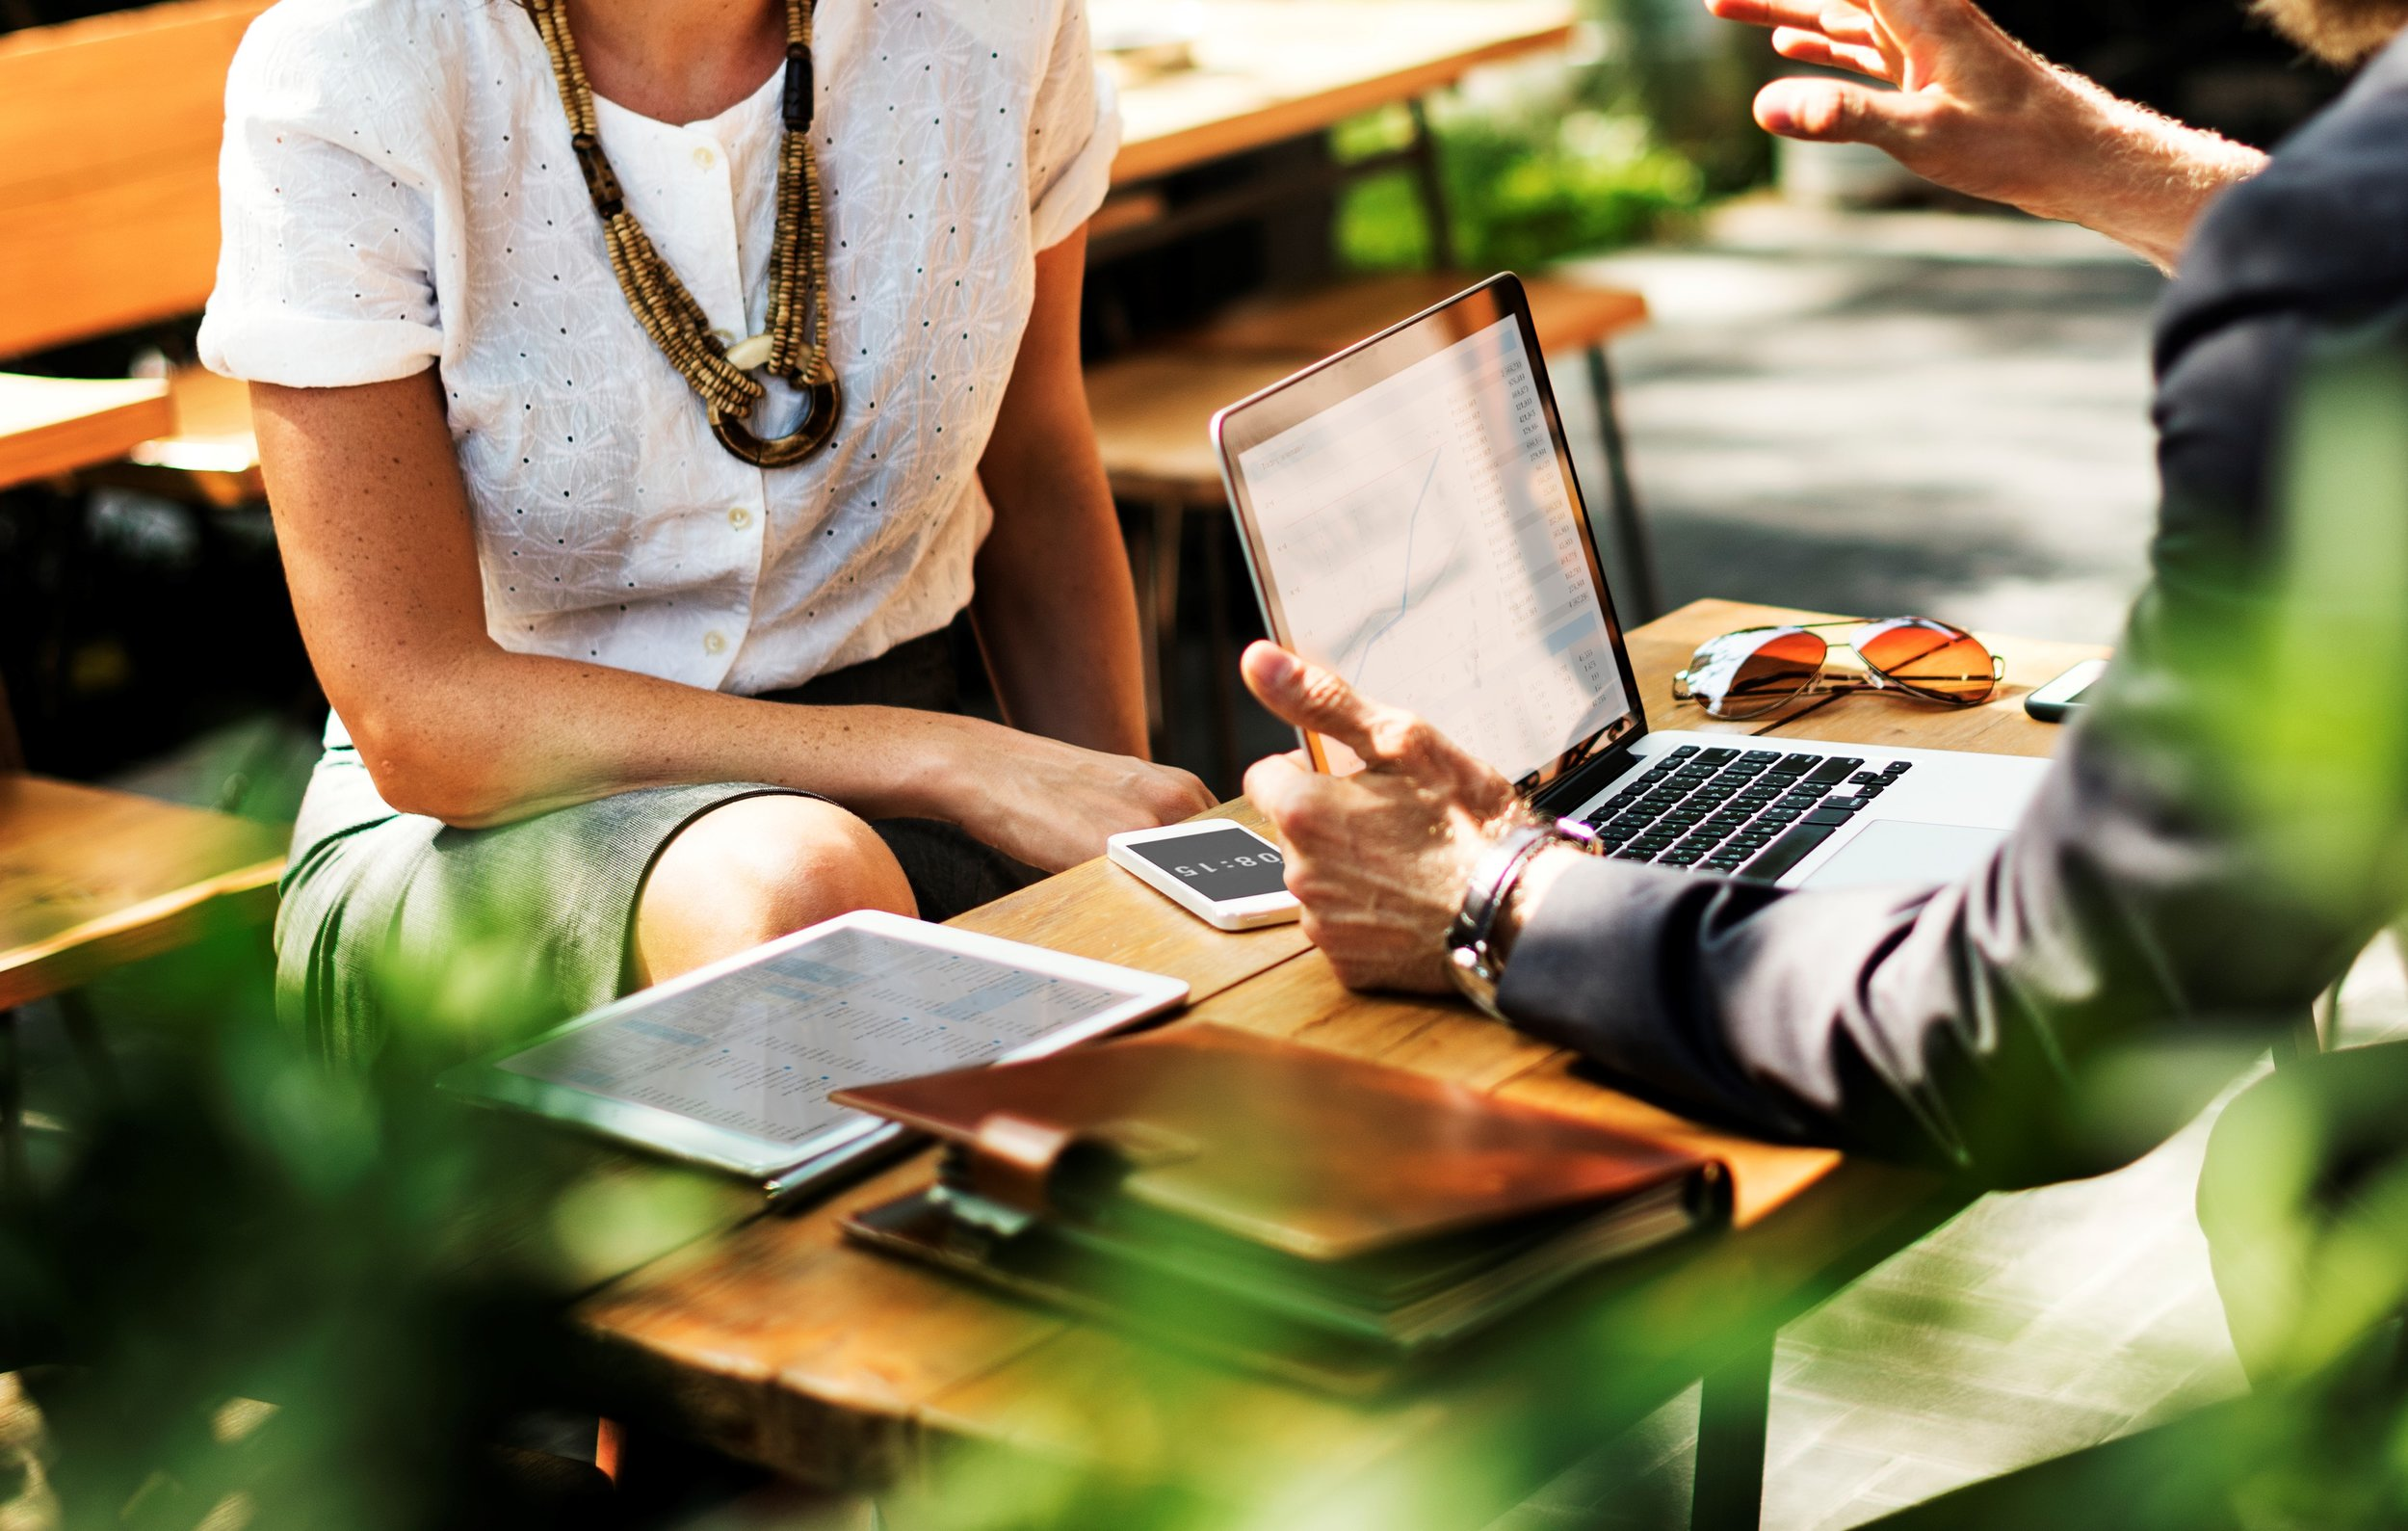 - Evergreen Script Services offers group workshops designed to help you craft your professional Narrative. Using the skills of storytelling, we connect your personal achievements and mythology to your professional goals.